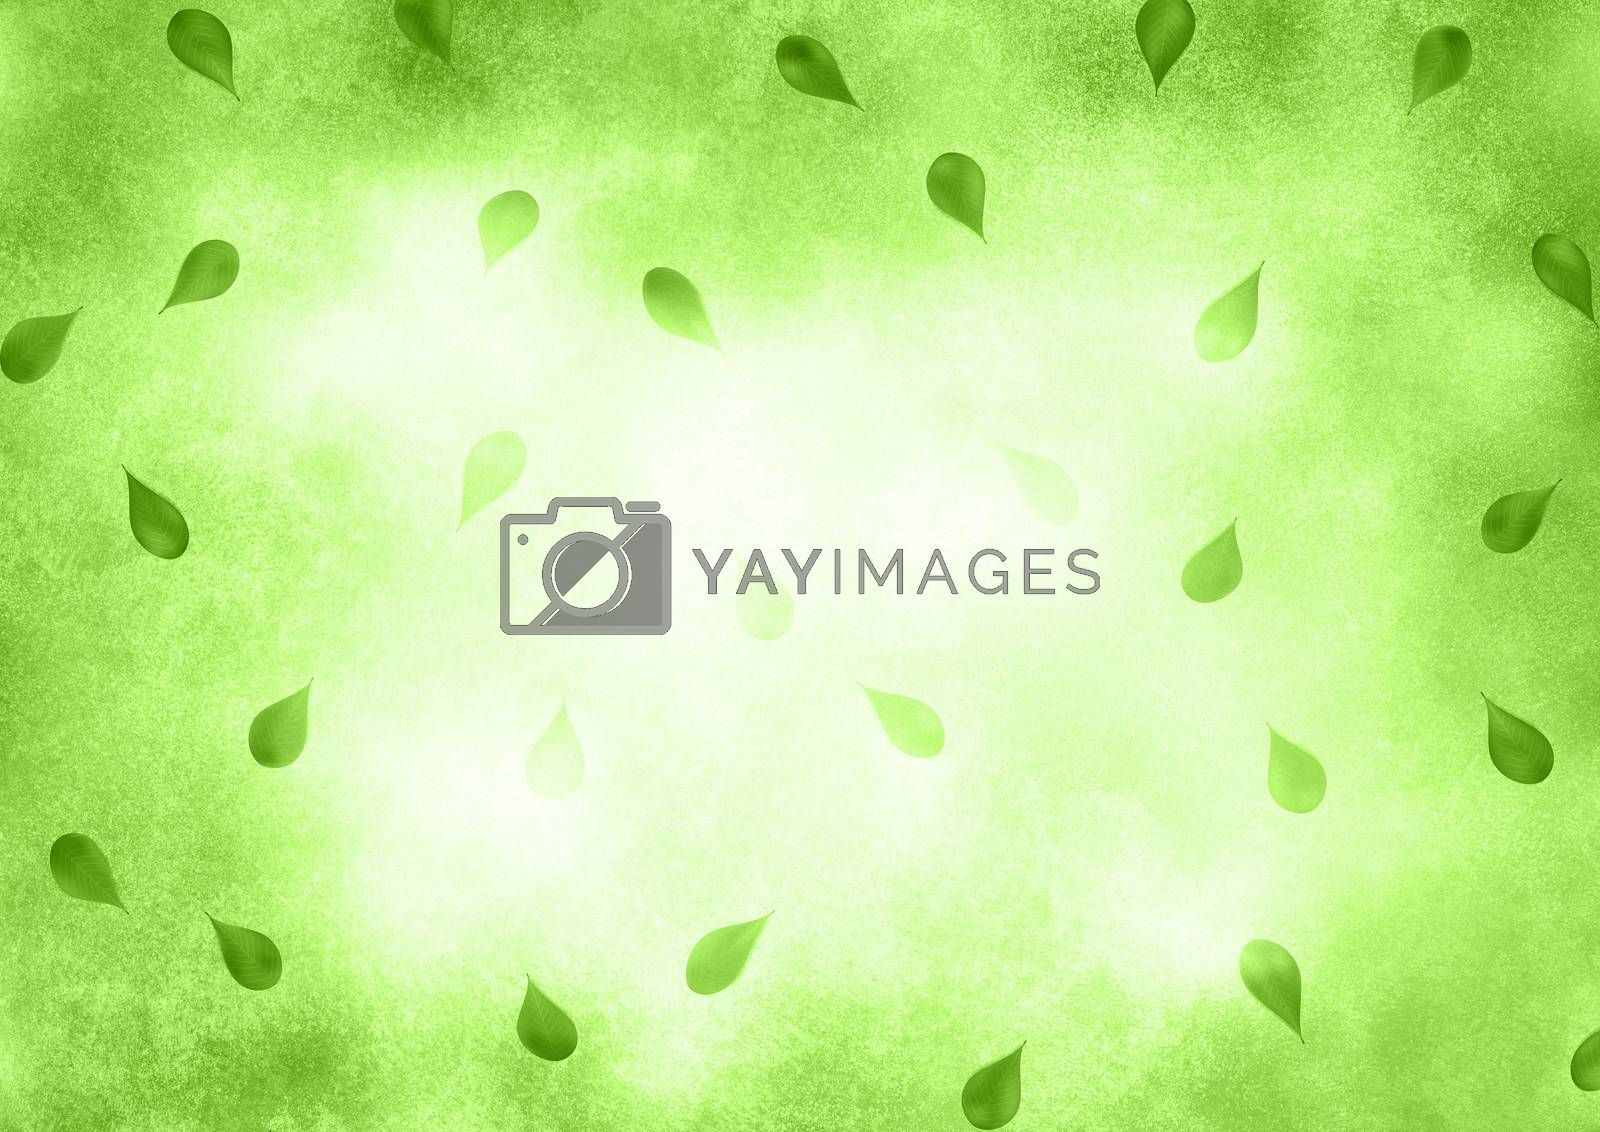 Abstract faded green background with leafs. by GraffiTimi